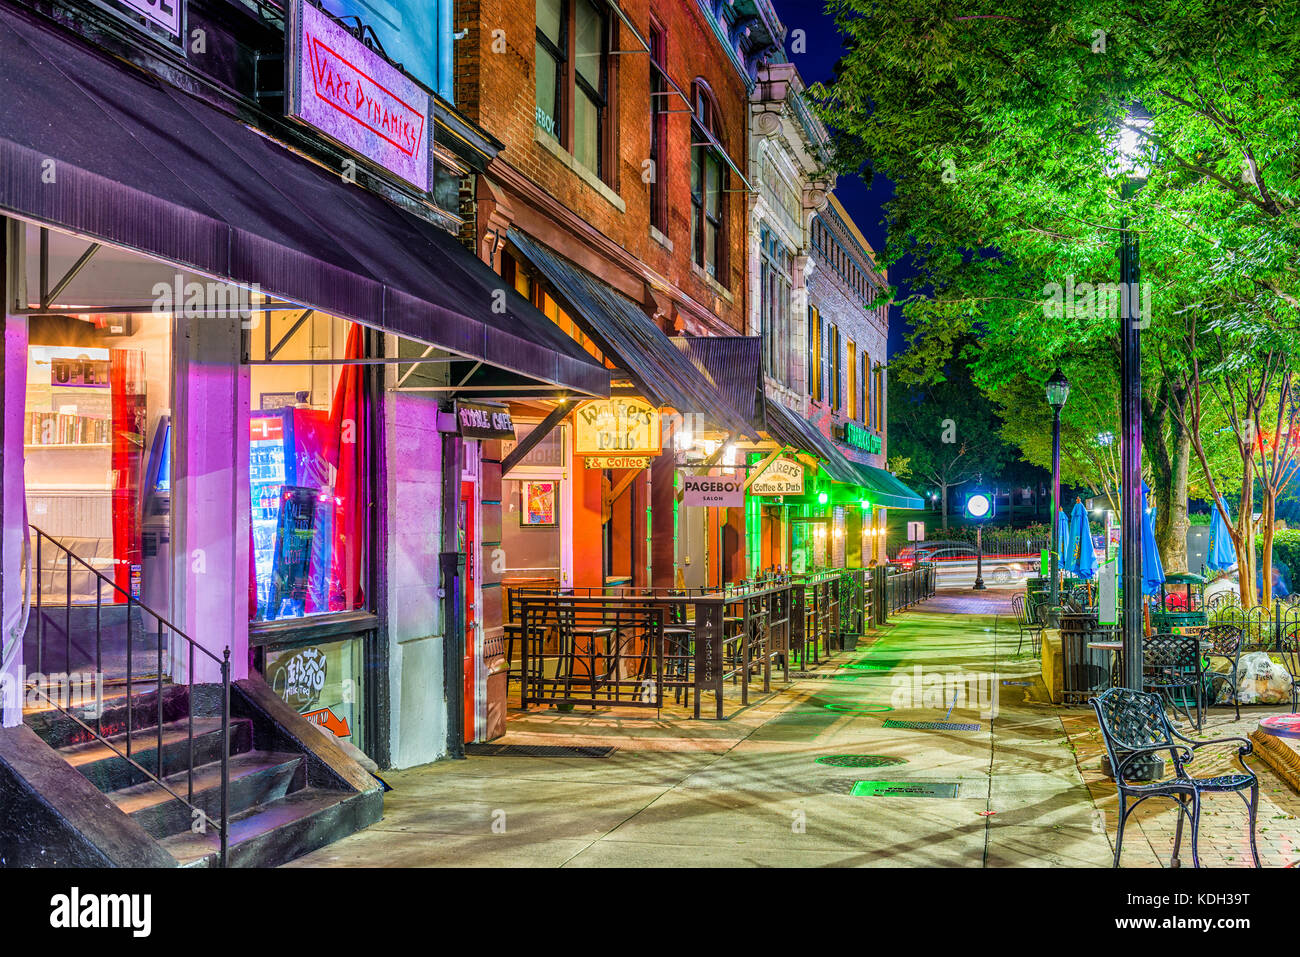 ATHENS, GEORGIA - AUGUST 13, 2017: Shops and bars along College Avenue in downtown Athens at night. - Stock Image